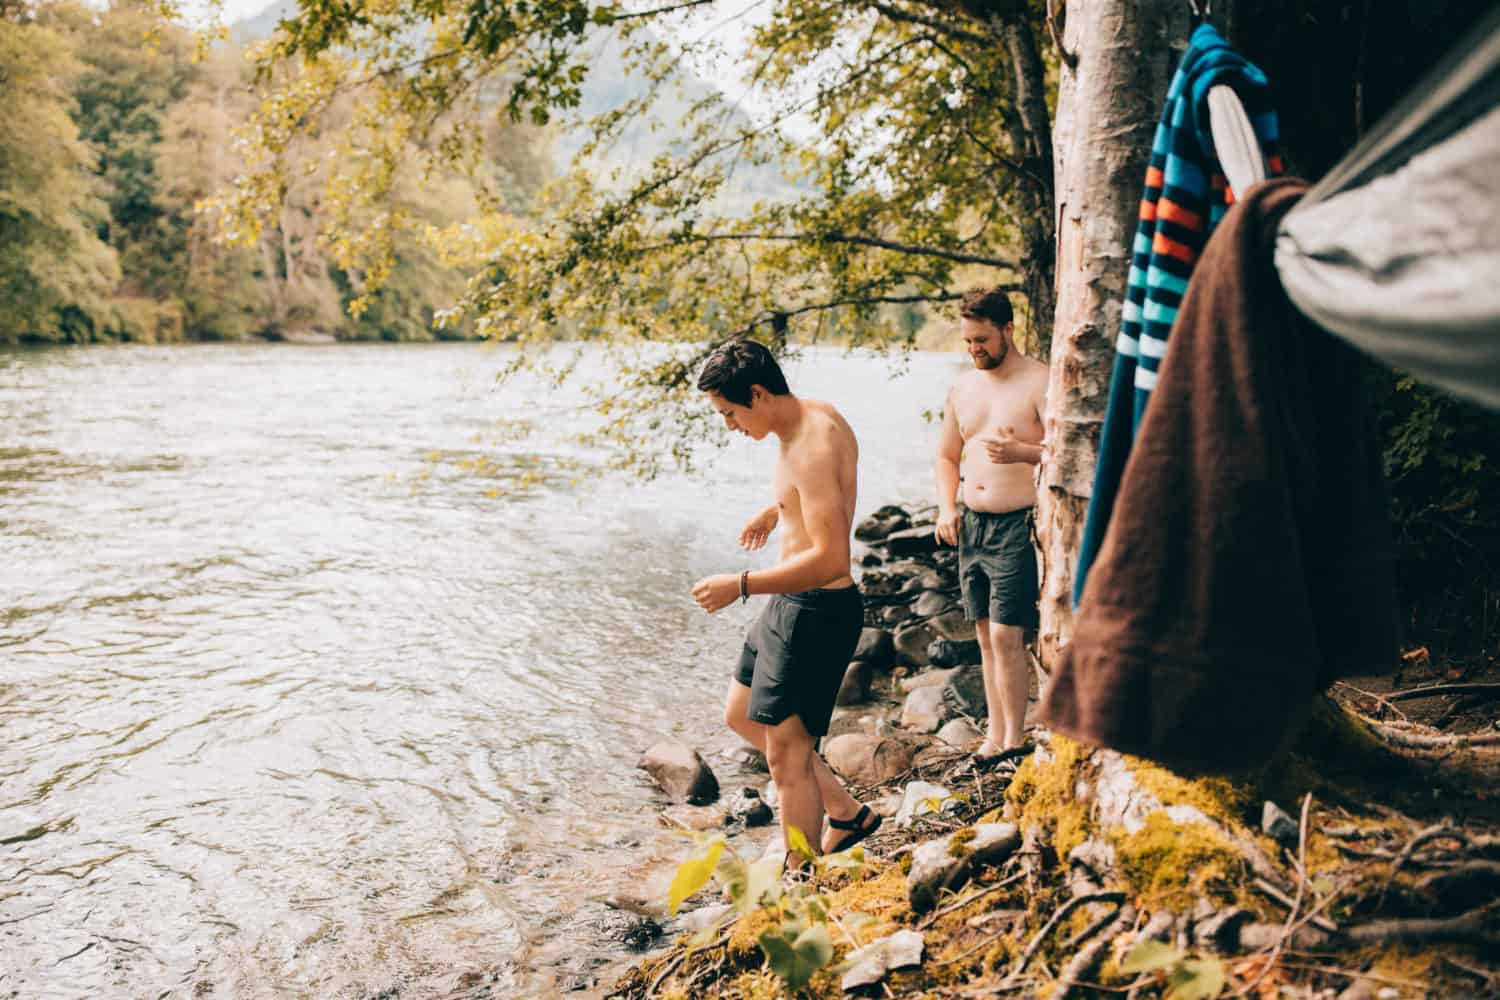 Jumping into the South Fork River - Washington